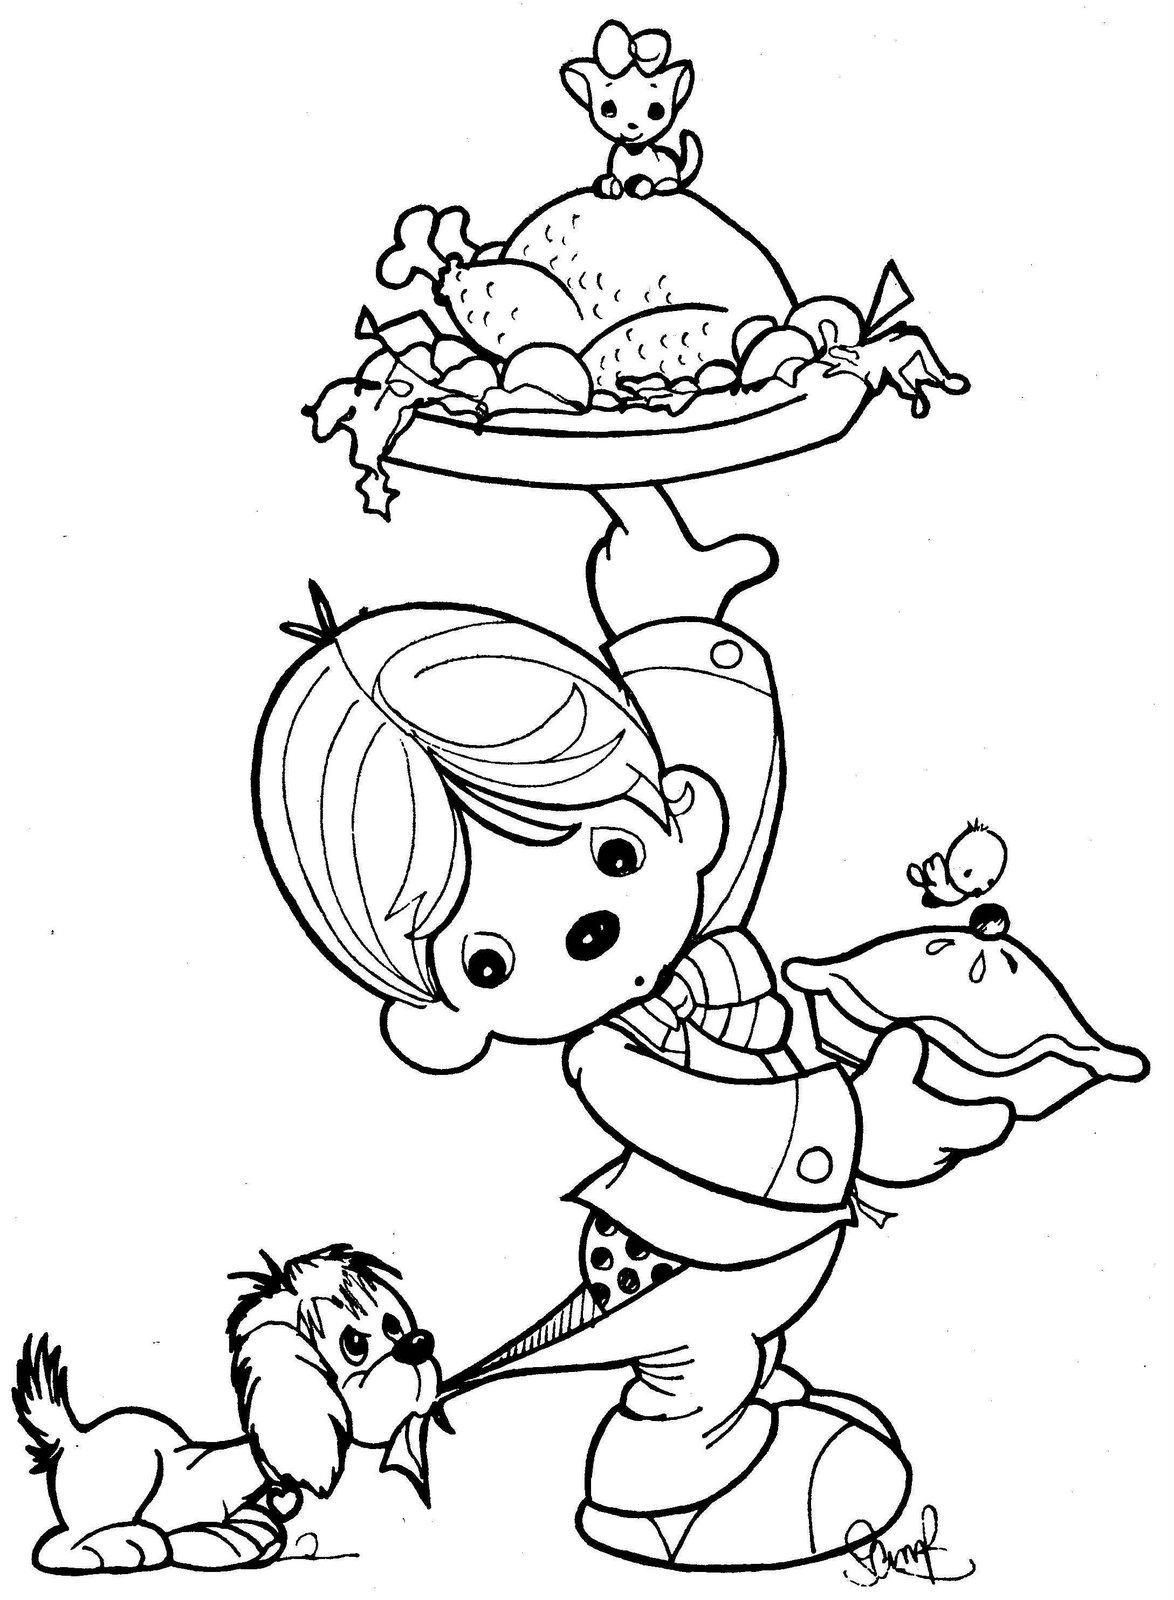 moreover  further how to draw iron man step 7  25281 2529 further Moses Receives Ten  mandments Coloring Page together with april fools day word search further icecreamflavors also bananos moreover Monster 01 also Dinosaur 02 as well  besides can stock photo csp0405521. on independence day bible coloring pages